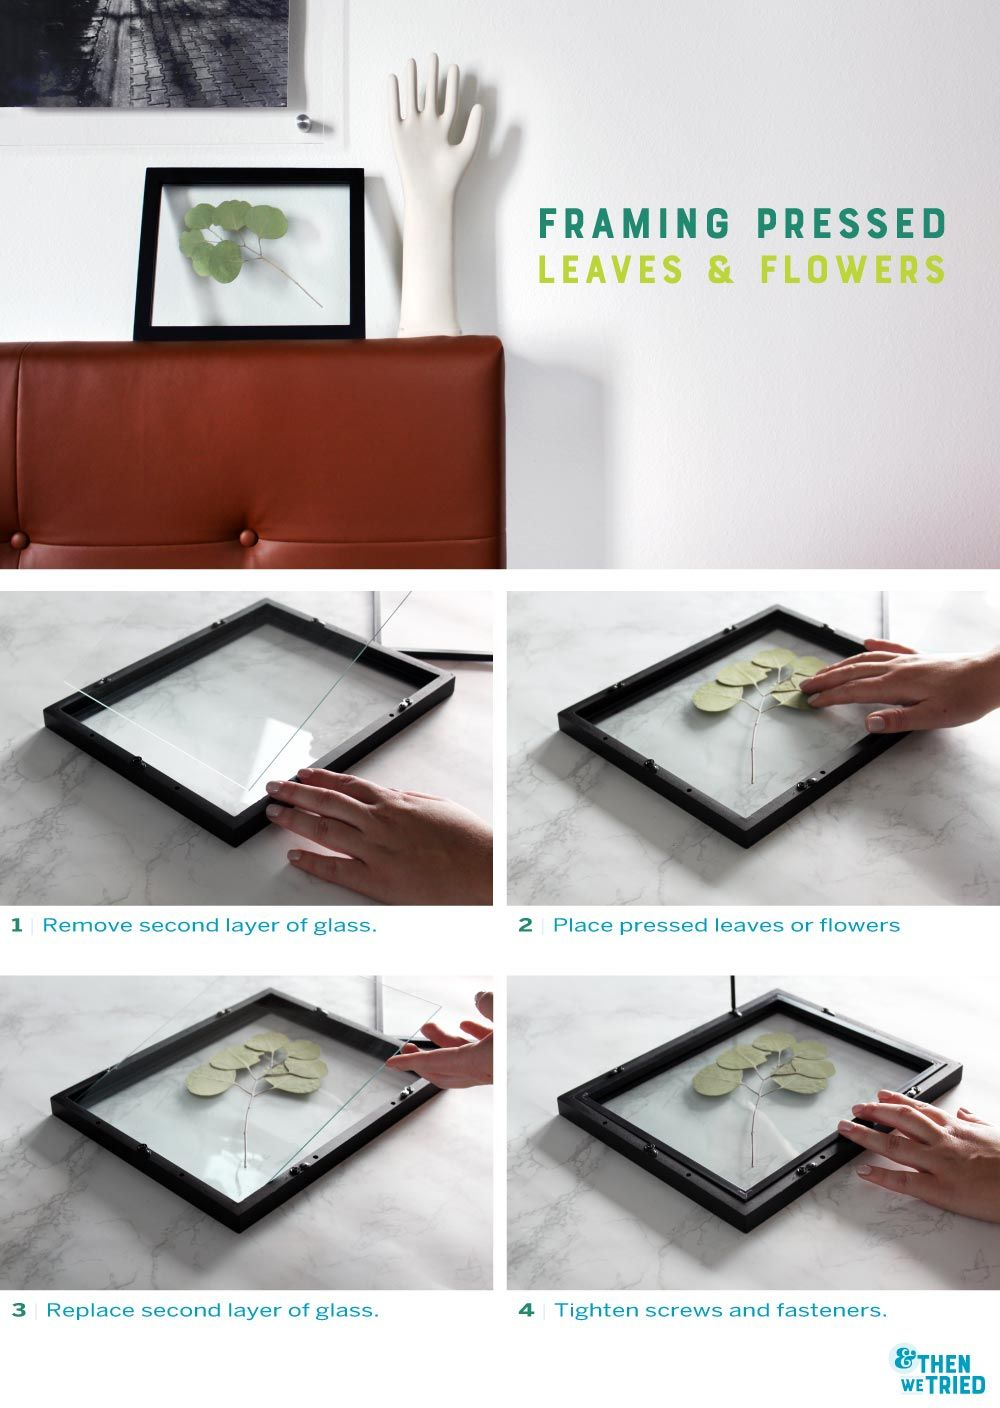 Framing Pressed Leaves and Flowers | Pinterest | Diys, Leaves and ...